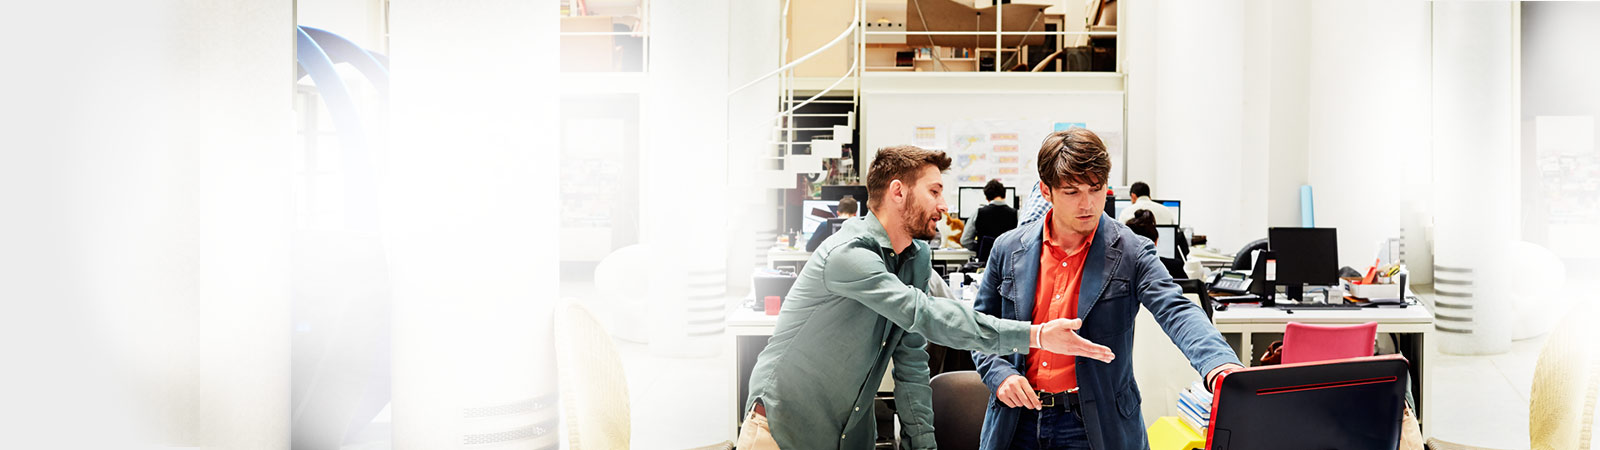 How Yammer helps teams work better together